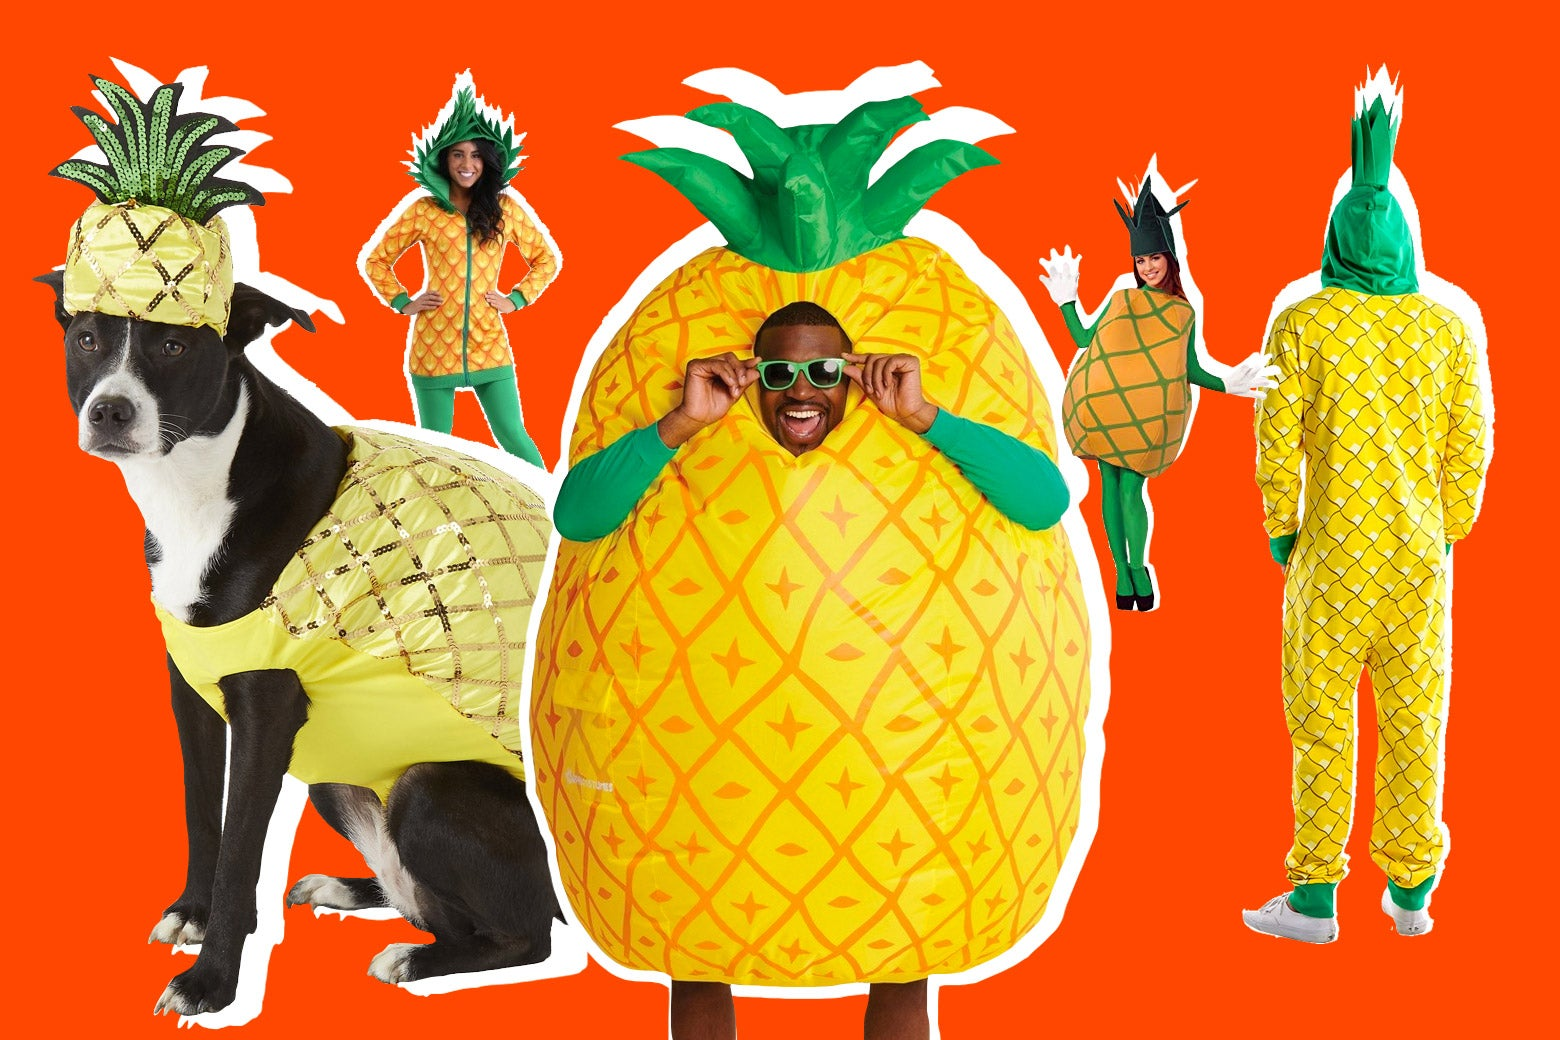 Photo illustration of various pineapple costumes